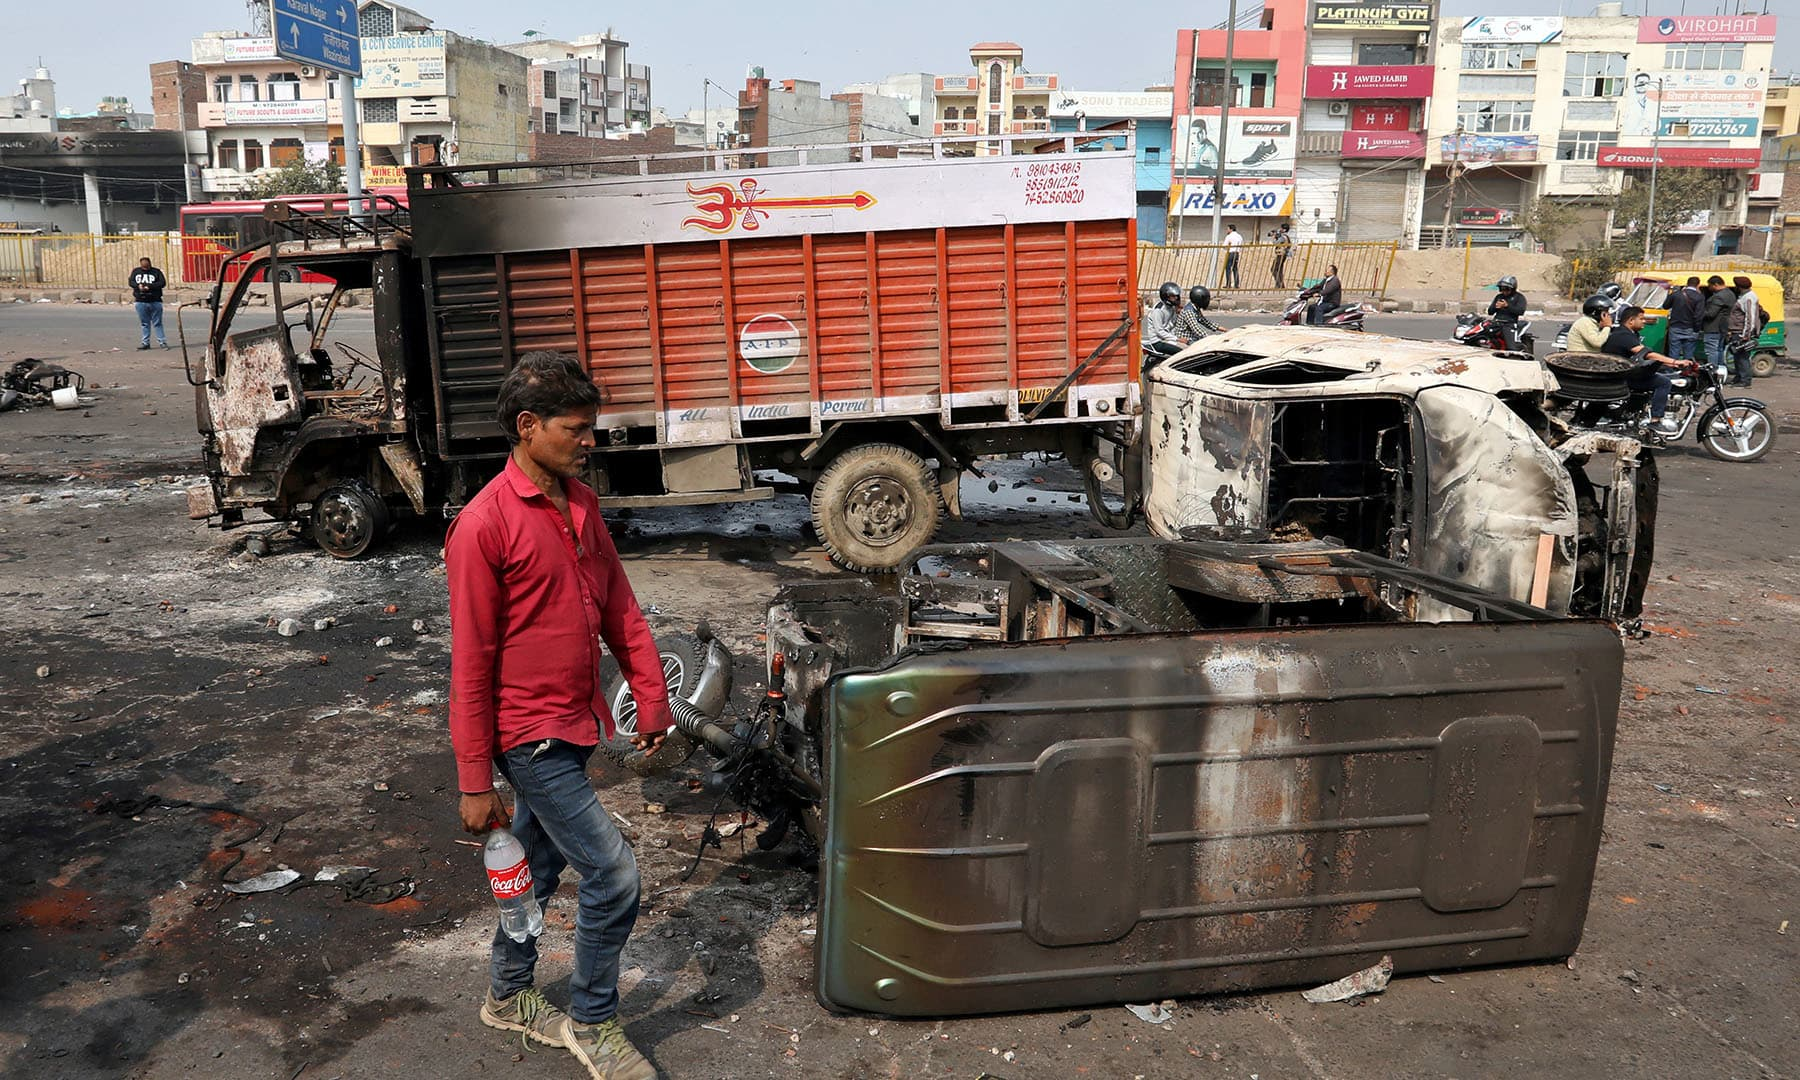 A man walks past damaged vehicles after they were set on fire by a mob in a riot affected area after clashes erupted between people demonstrating for and against a new citizenship law in New Delhi,  February 26. — Reuters